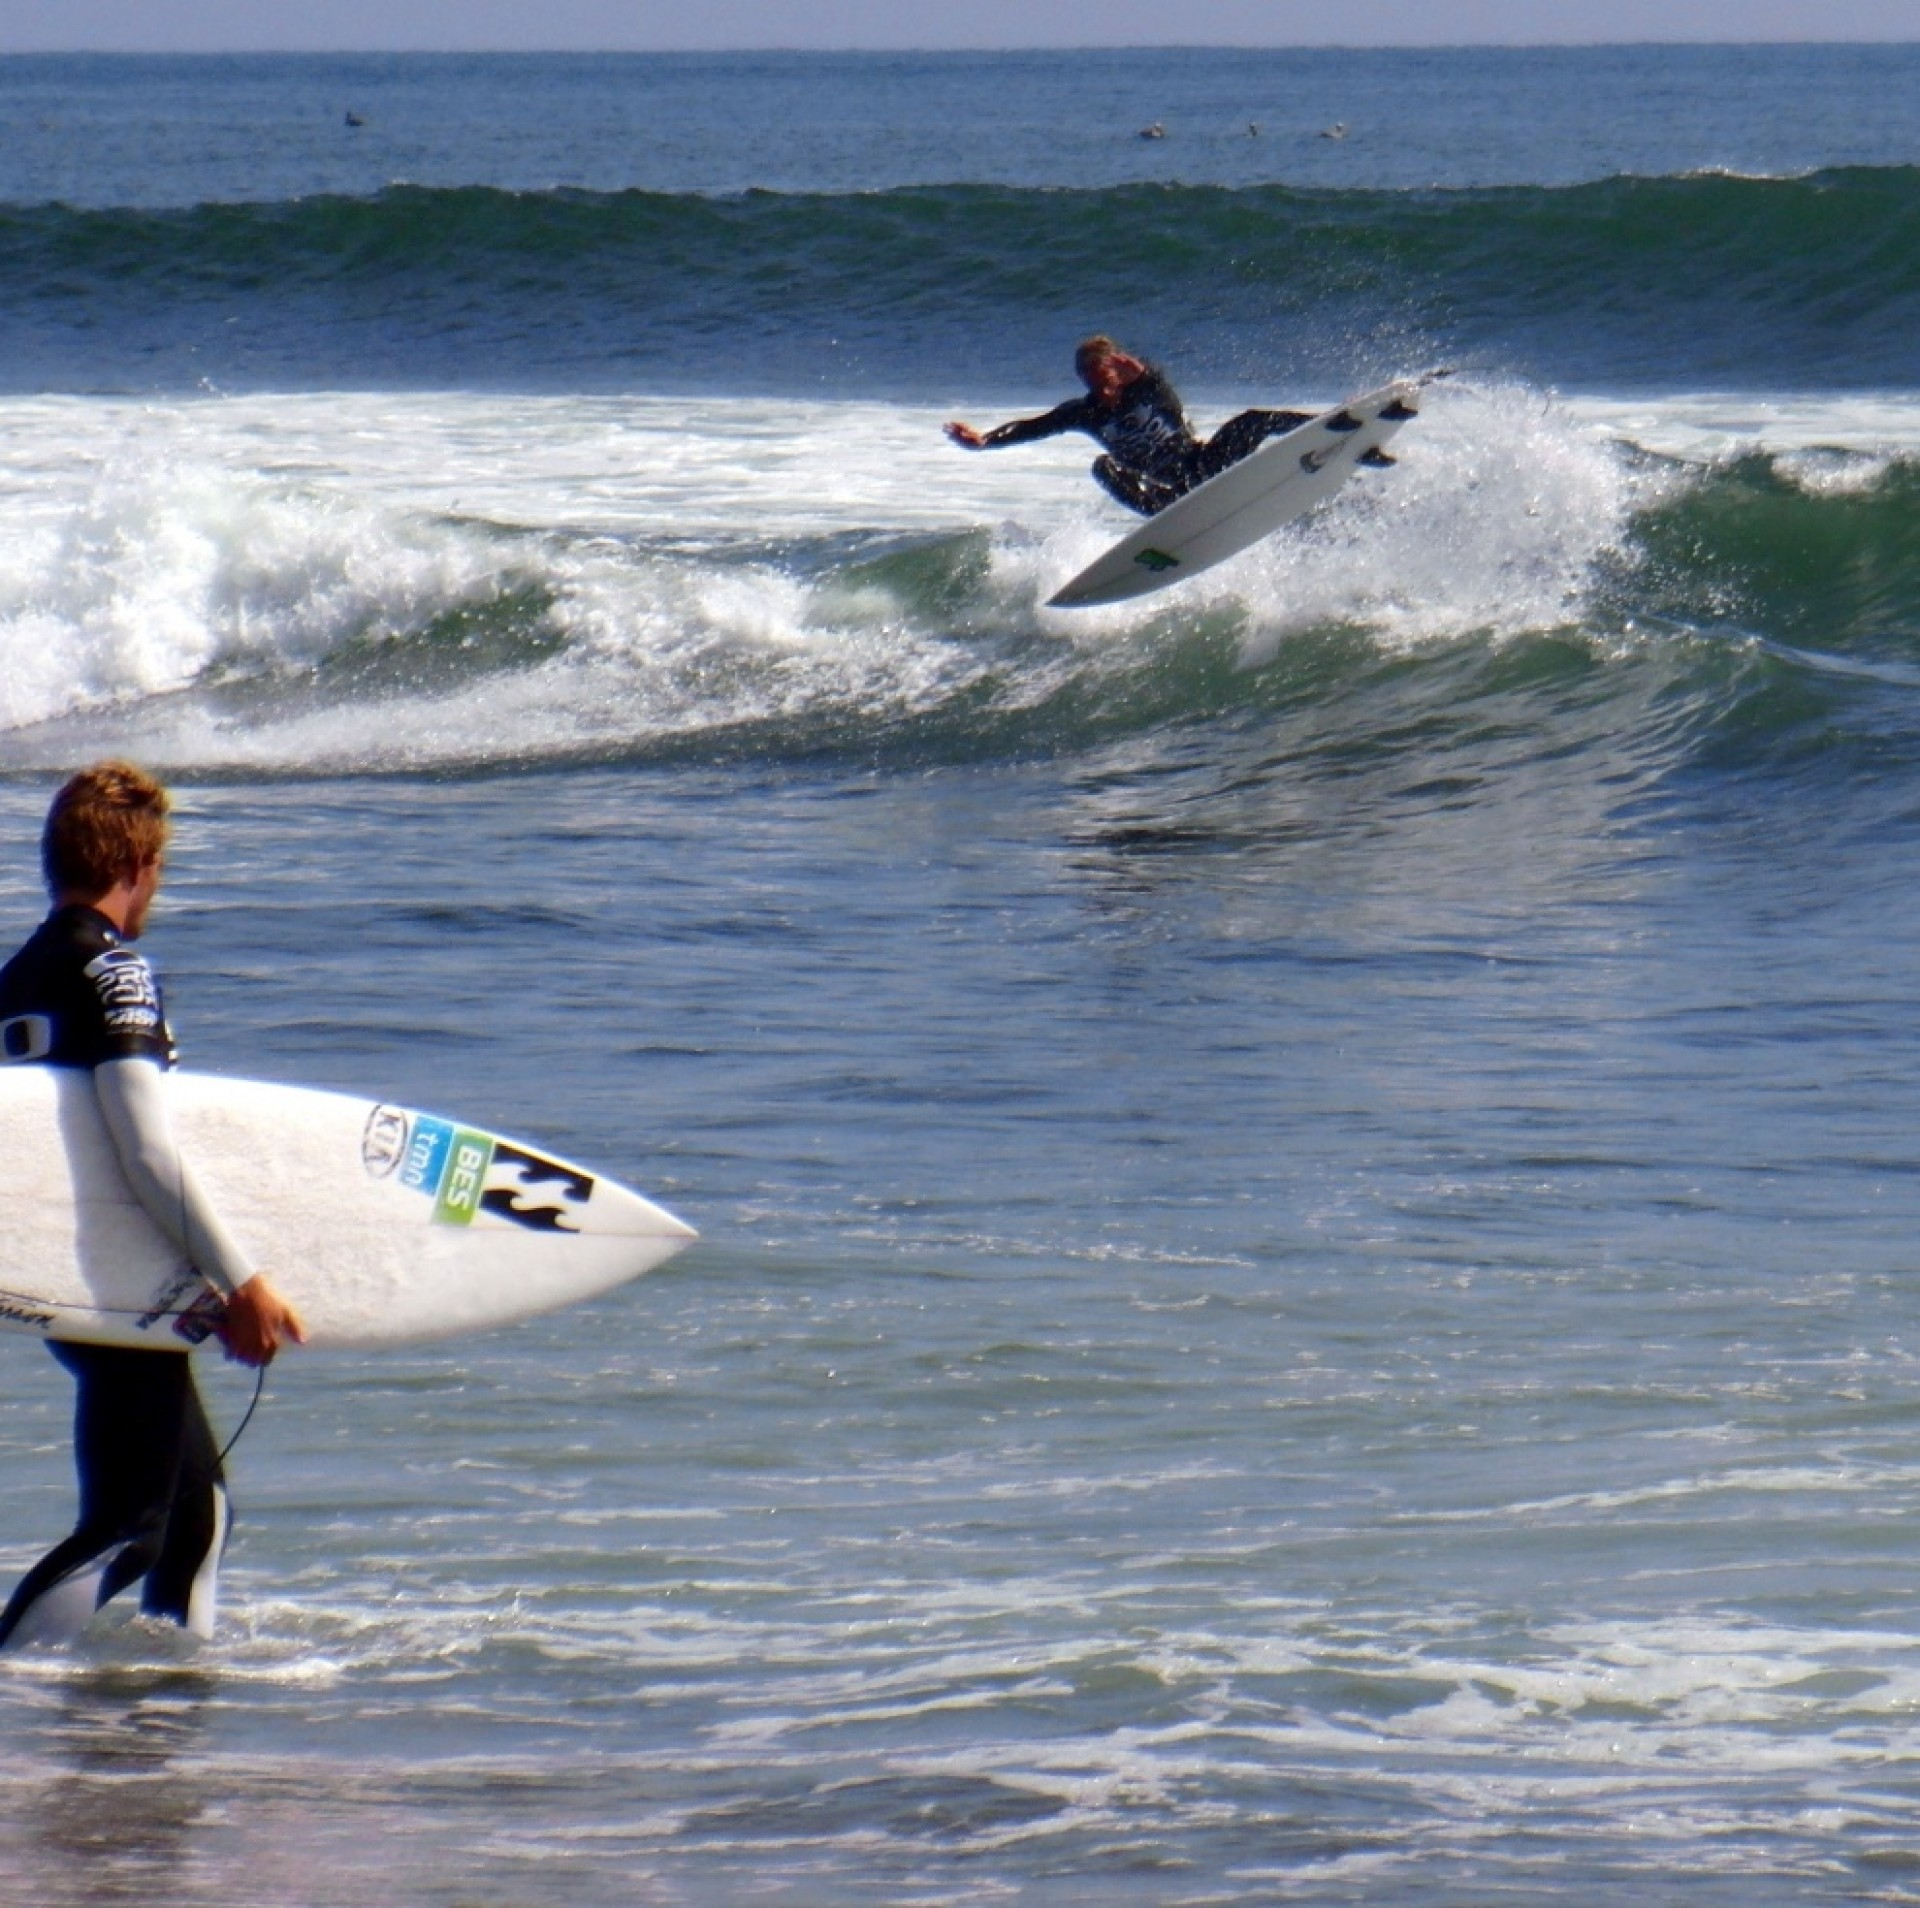 Conor O'Donoghue's photo of Trestles